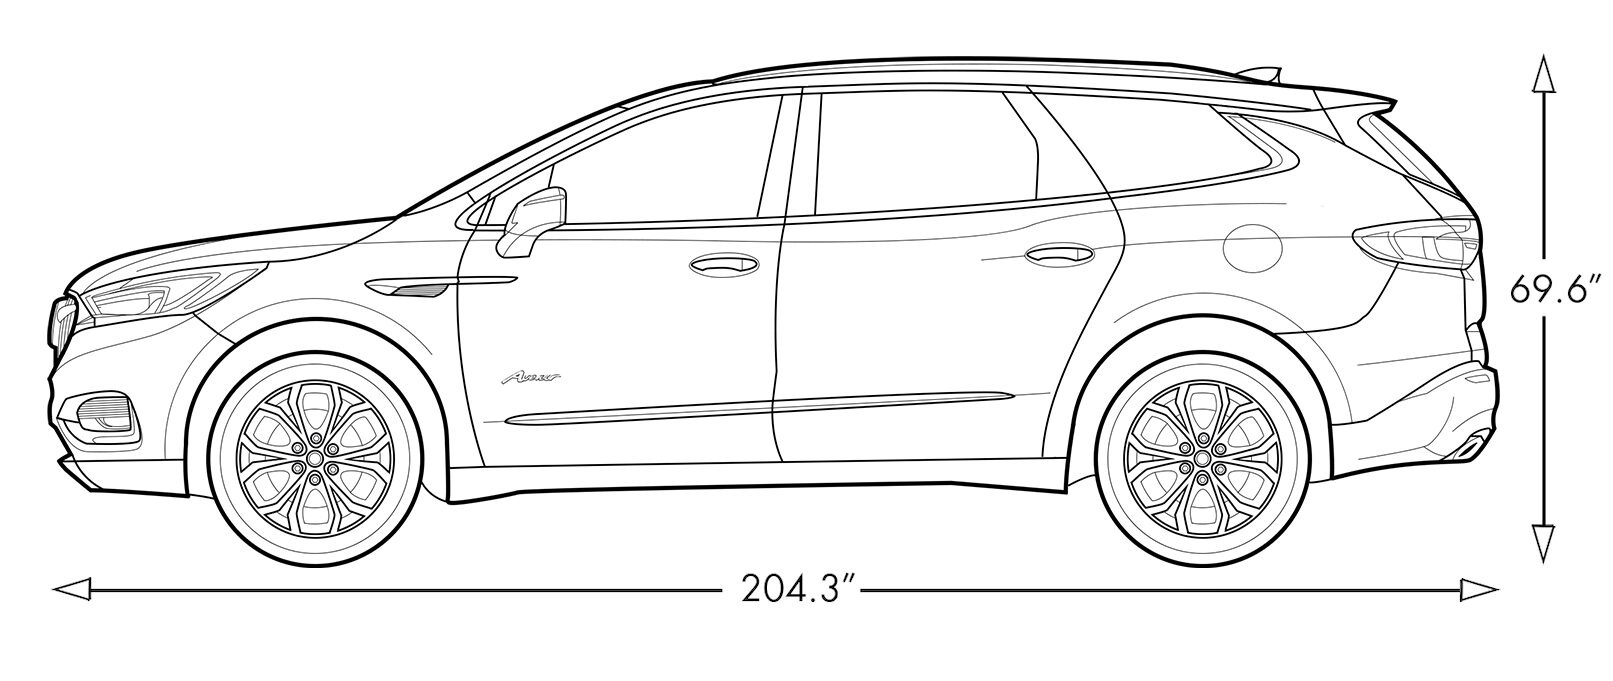 hight resolution of diagram image showing the height and length of the 2019 buick enclave avenir mid size